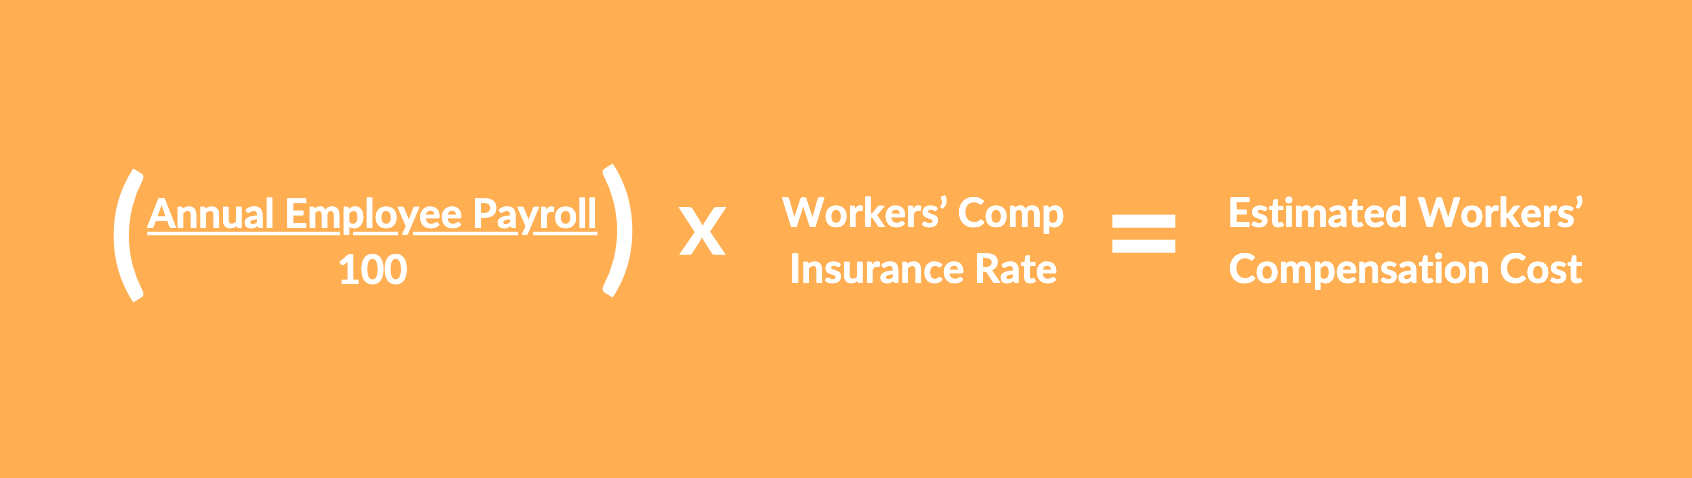 Workers comp cost per employee